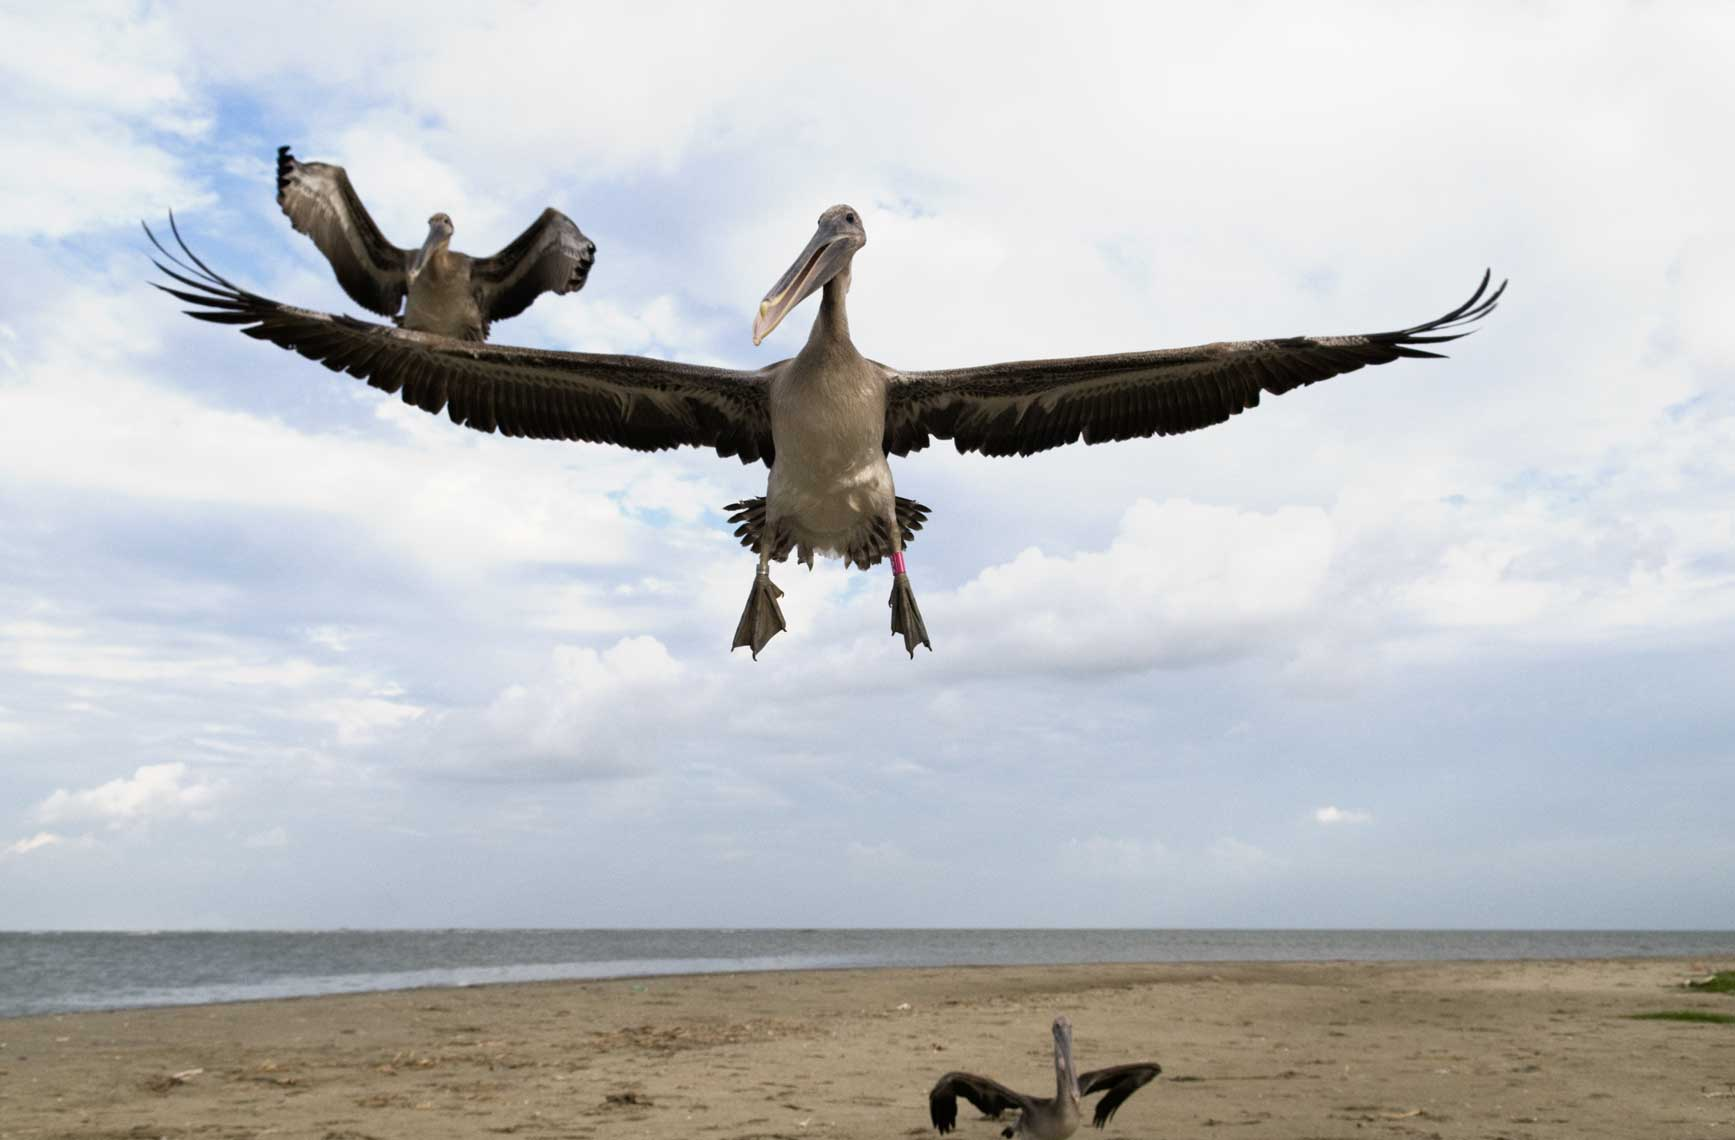 brown-pelicans-in-flight-after-release-from-the-oil-spill